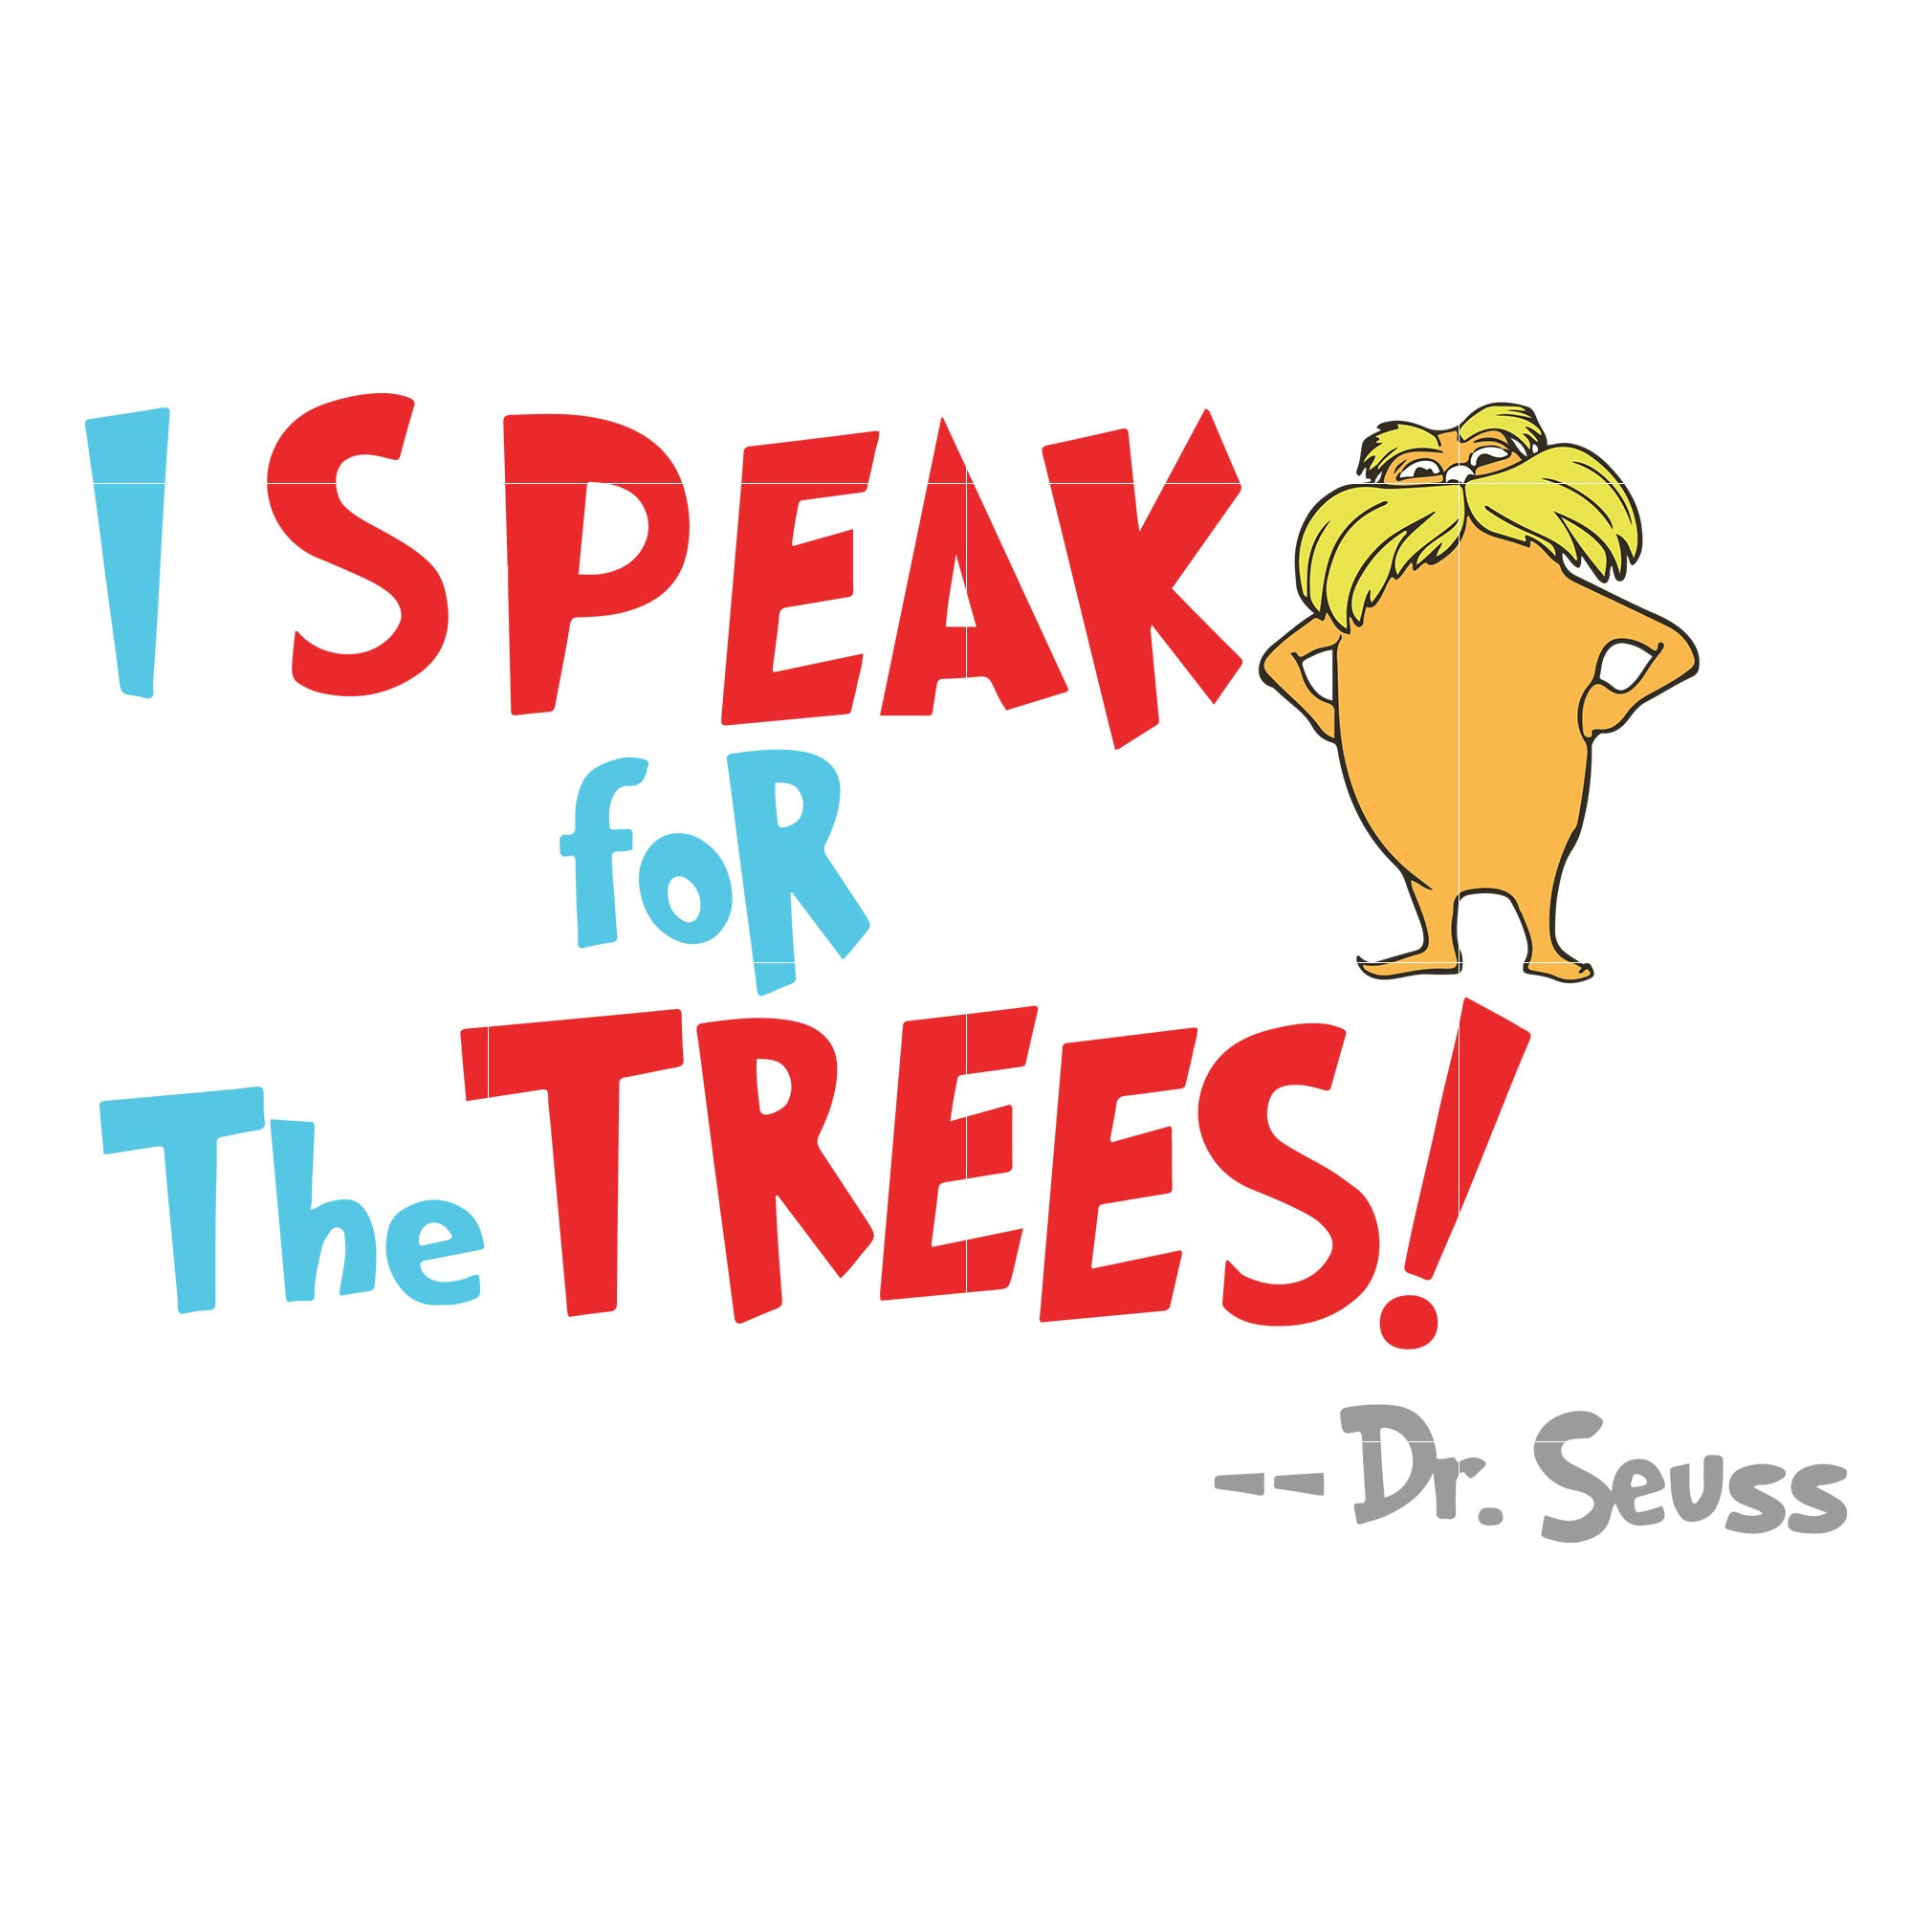 I speak for the trees, dr seuss svg, dr seuss quotes, digital file